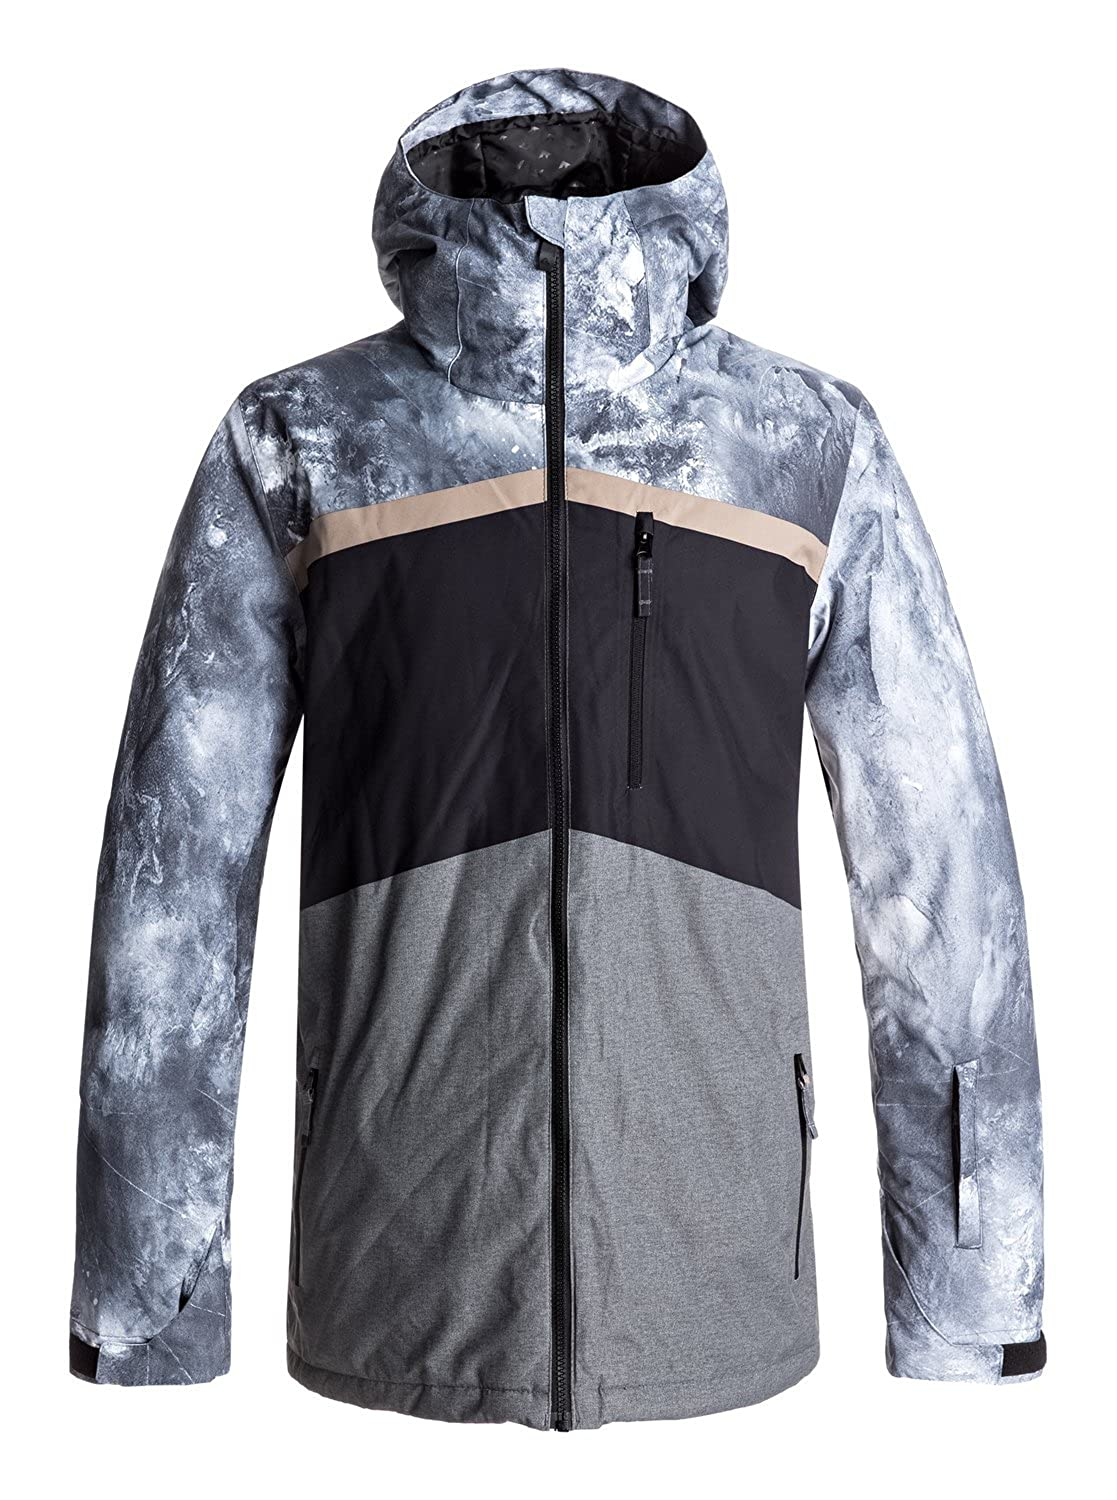 Quiksilver Mission Engineered - Chaqueta para Nieve para ...